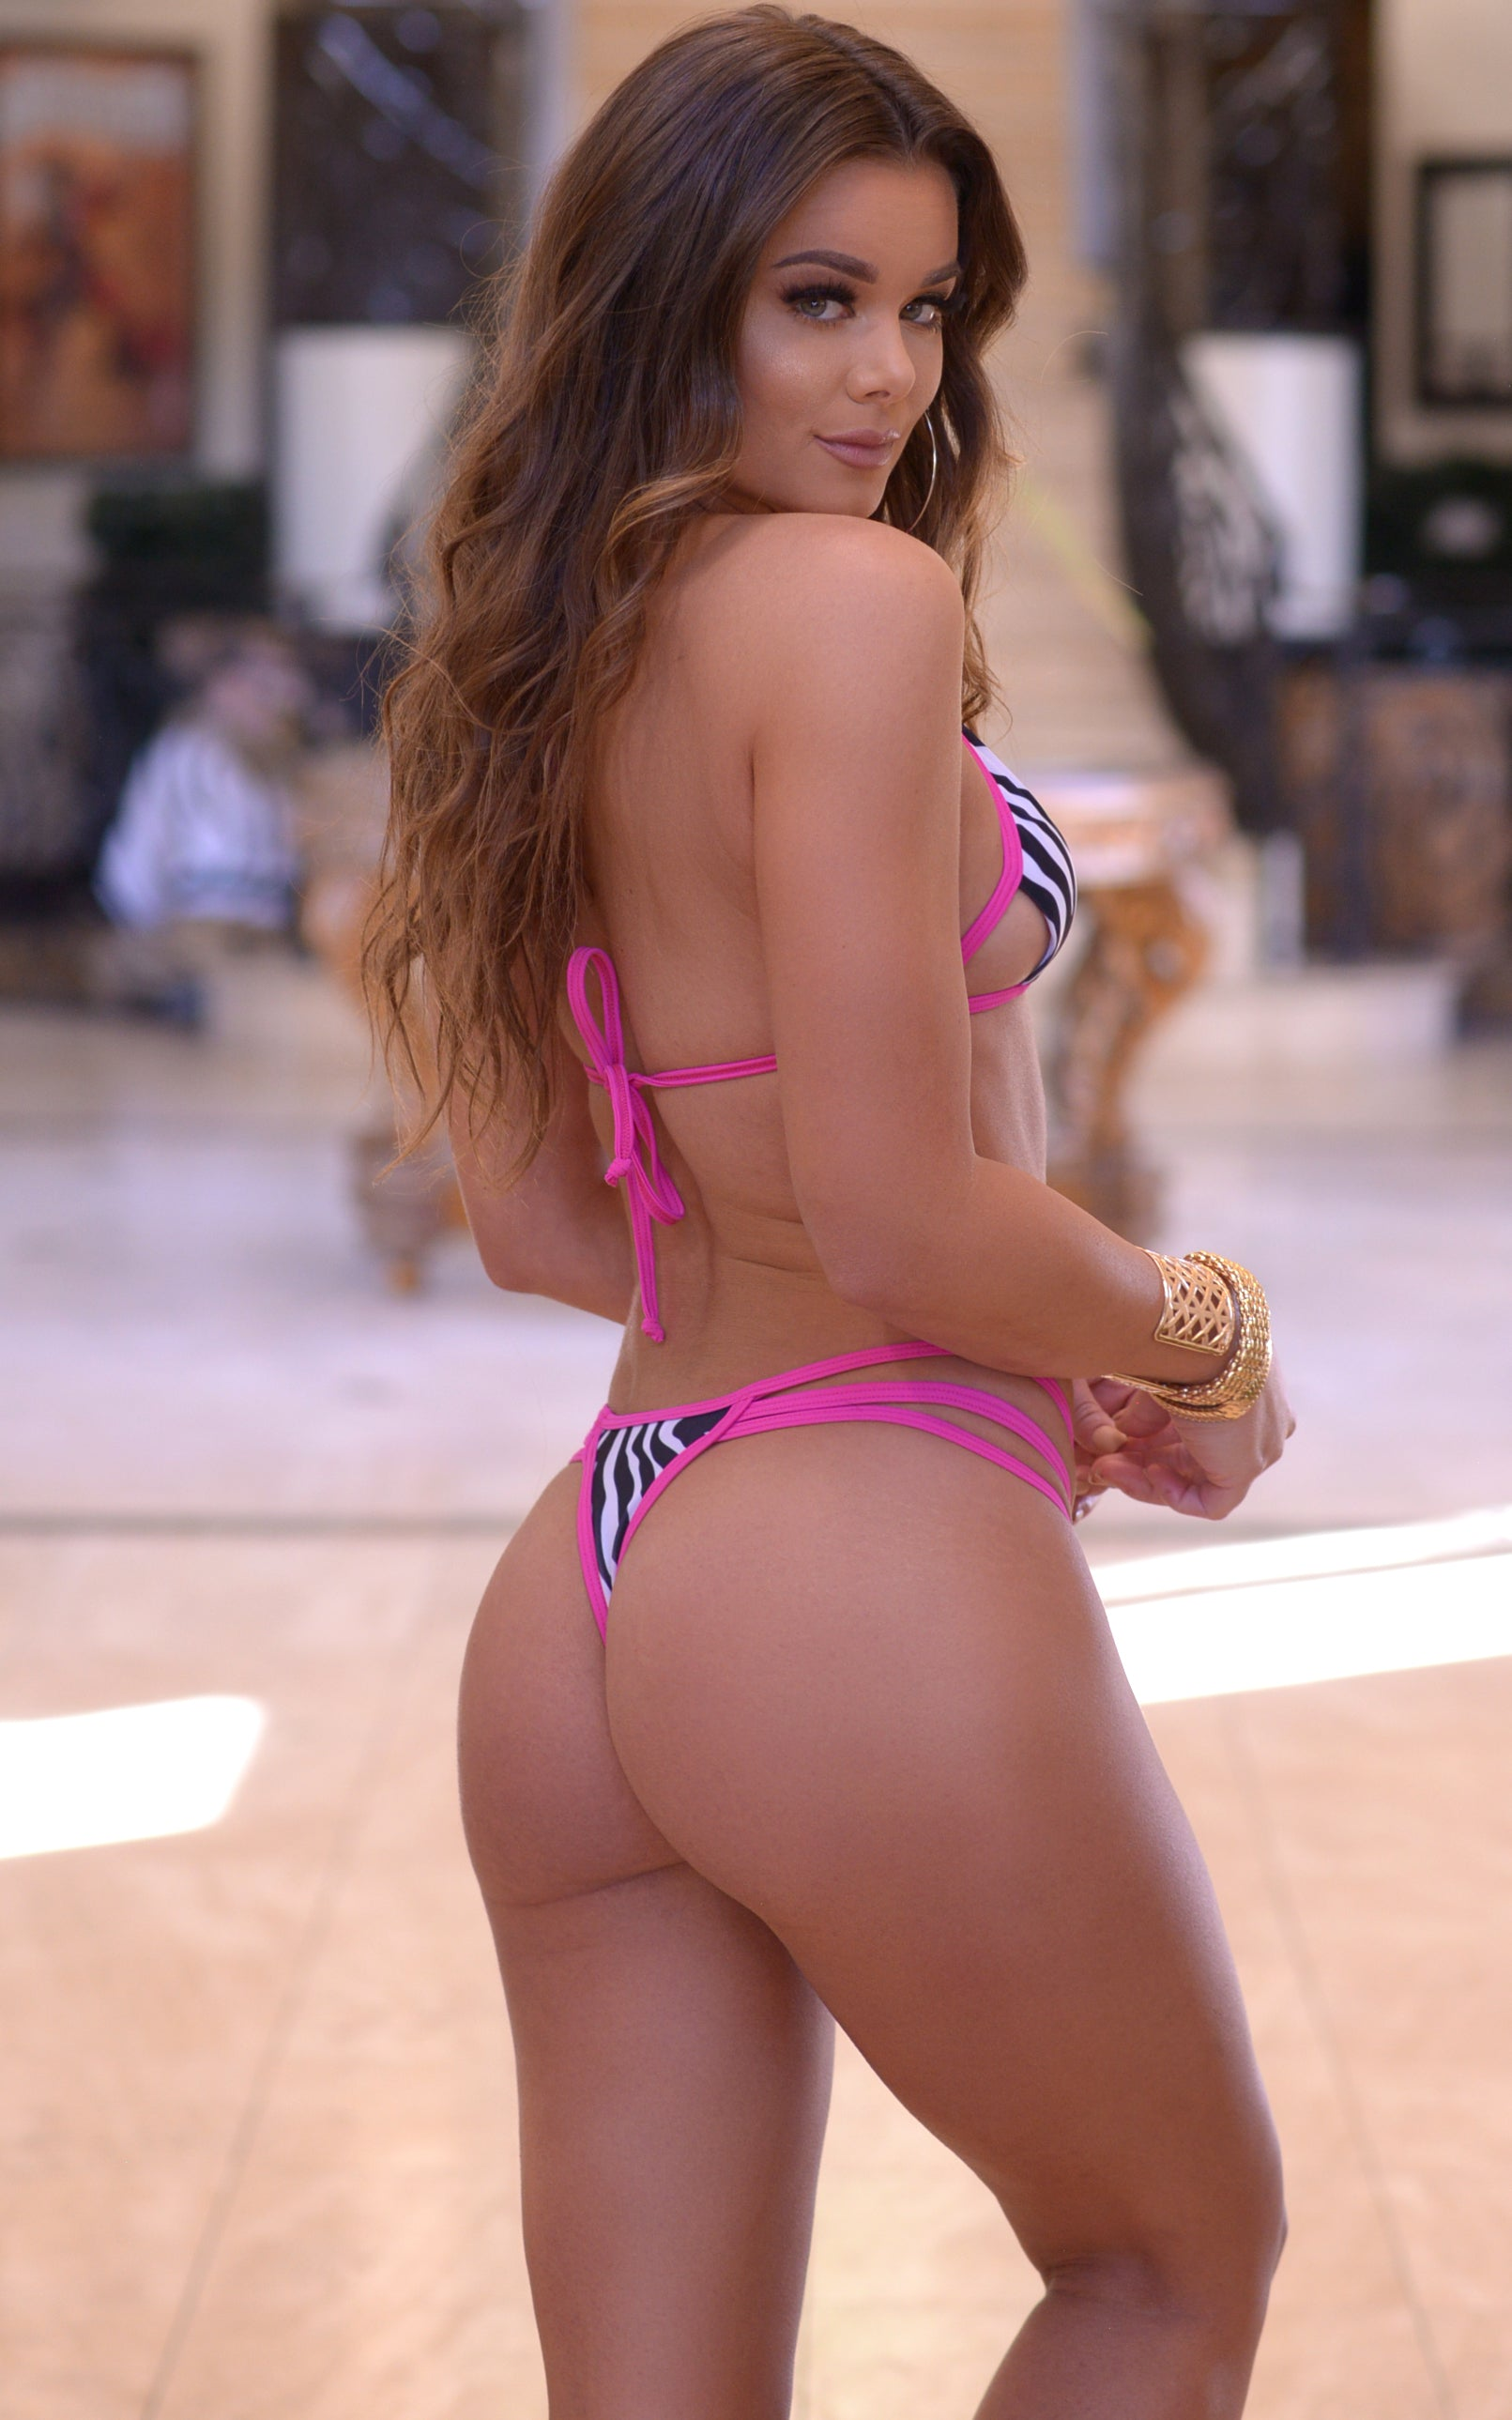 Myrtle Beach: Strappy Cut out Thong Bikini in Zebra/Pink - Chynna Dolls Swimwear